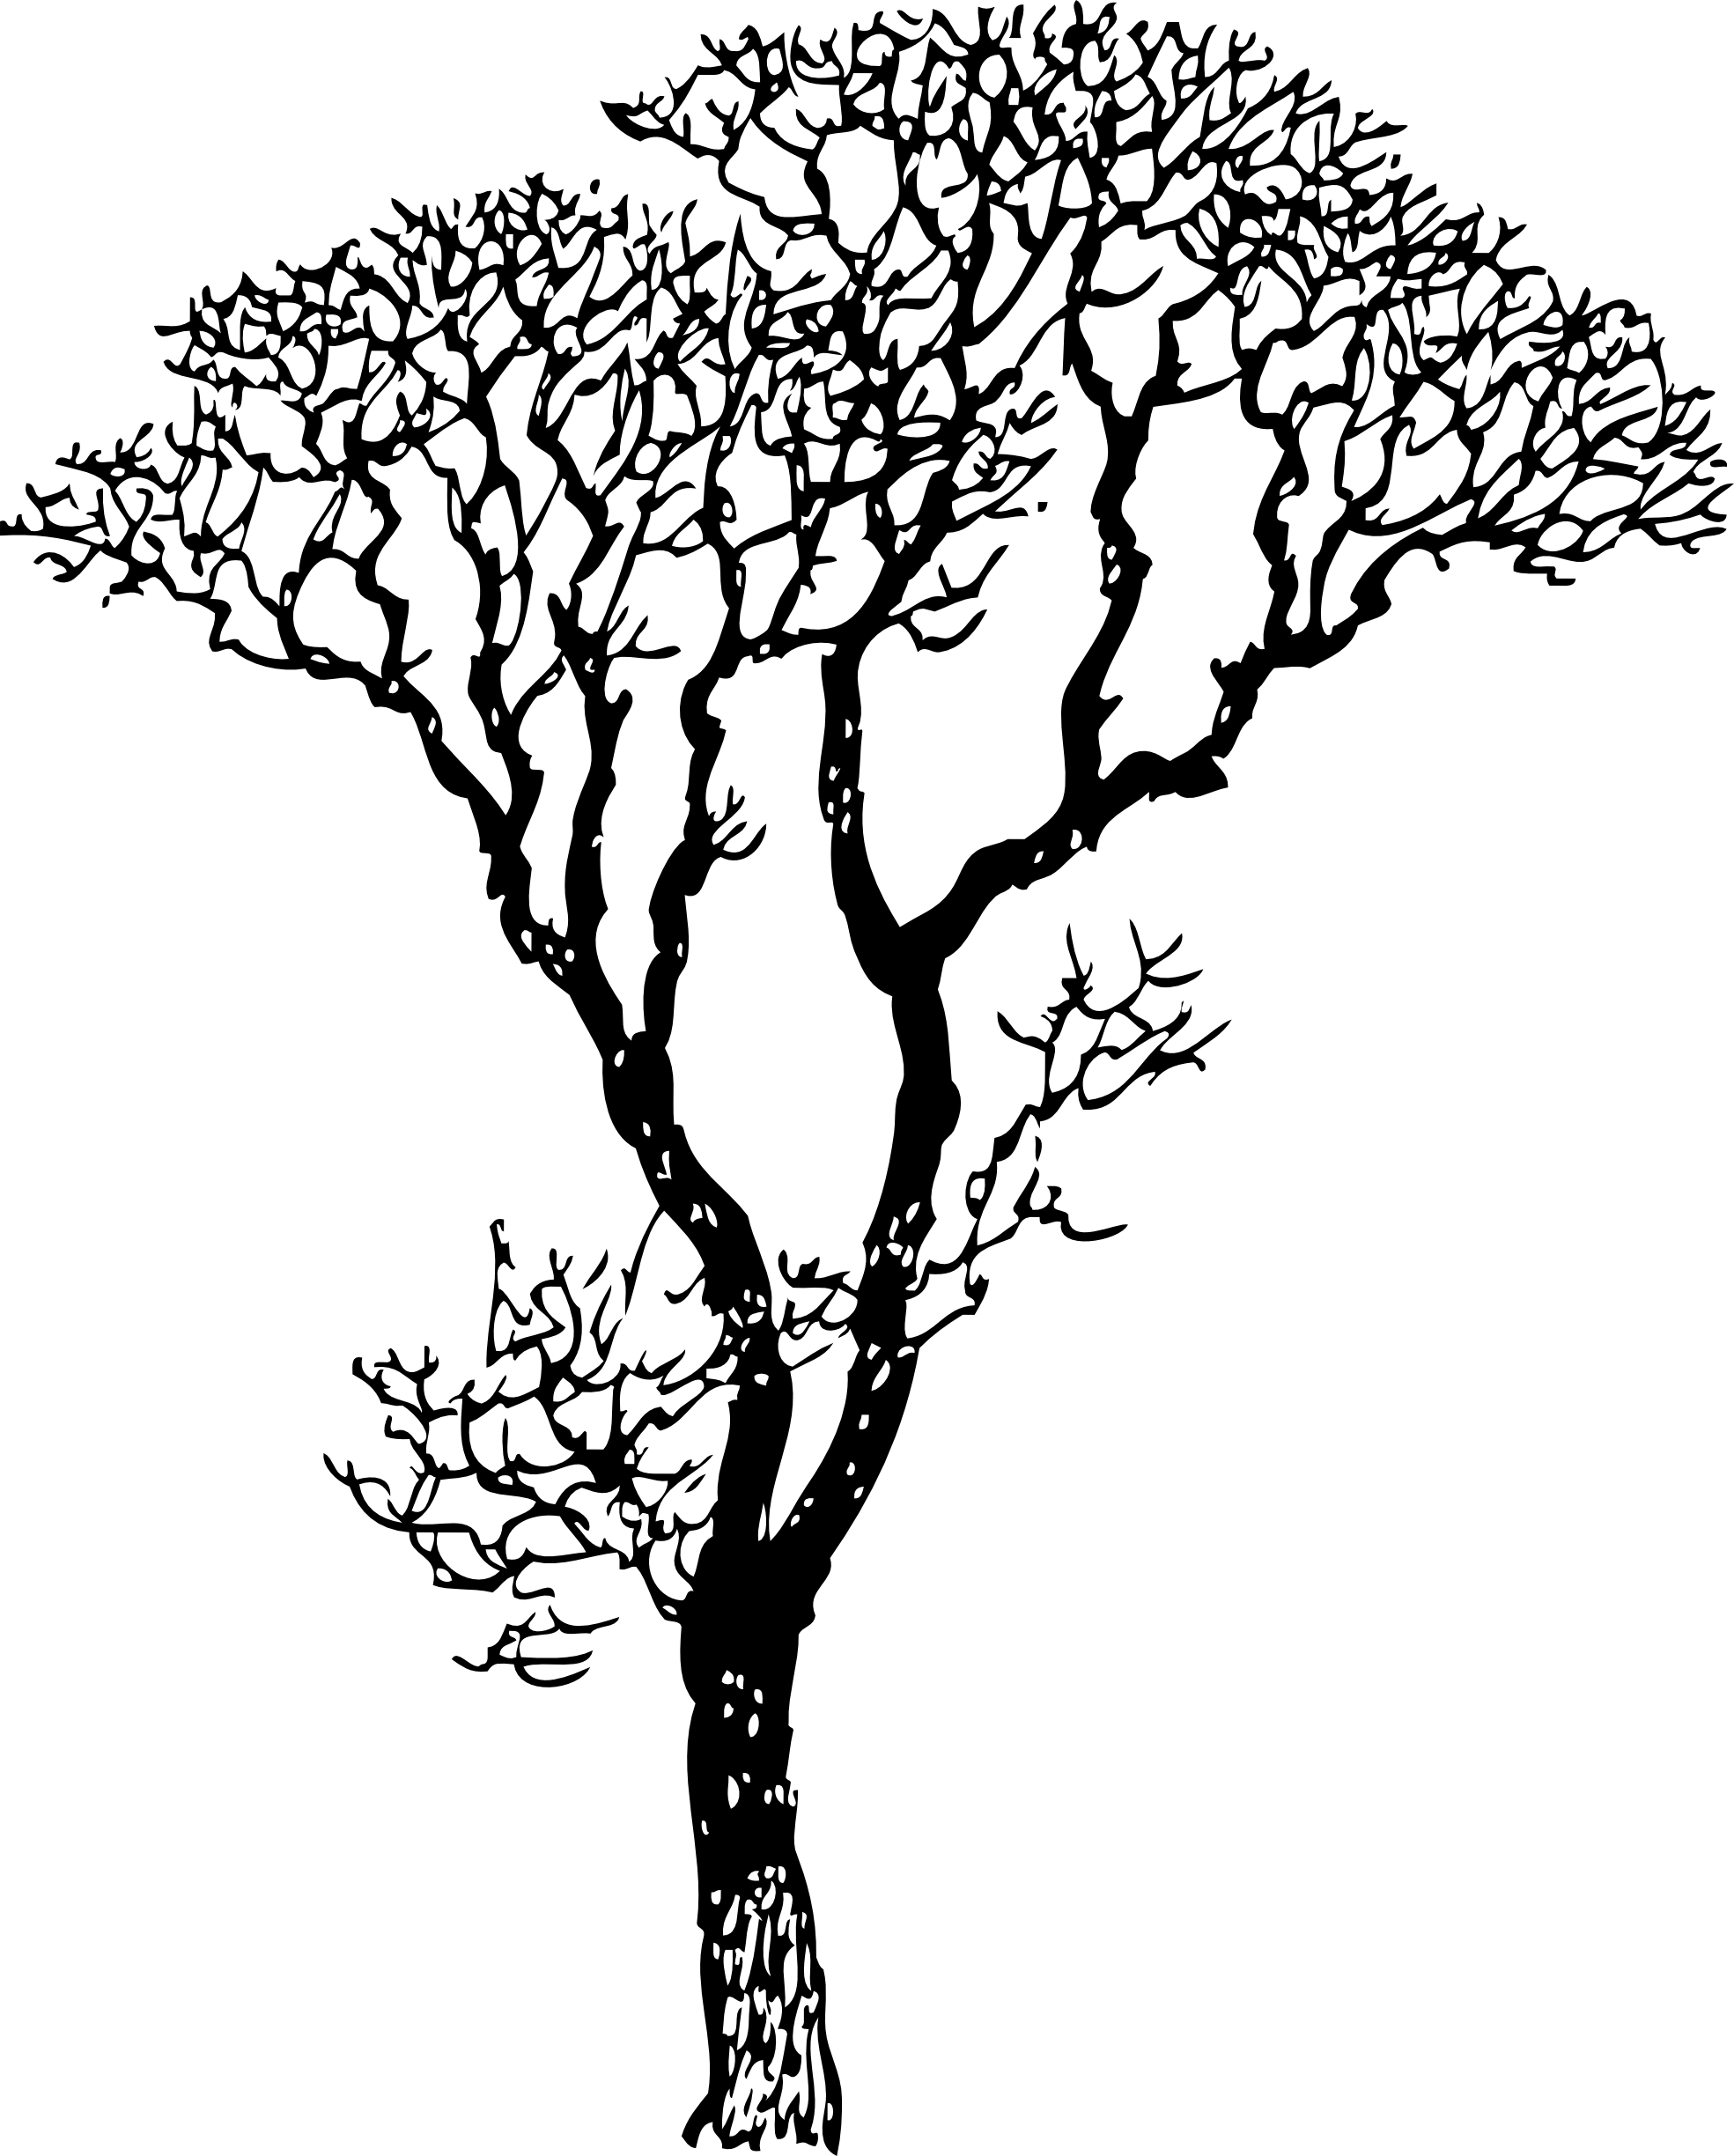 Bare Tree Black White Line Art Coloring Book Colouring Letters